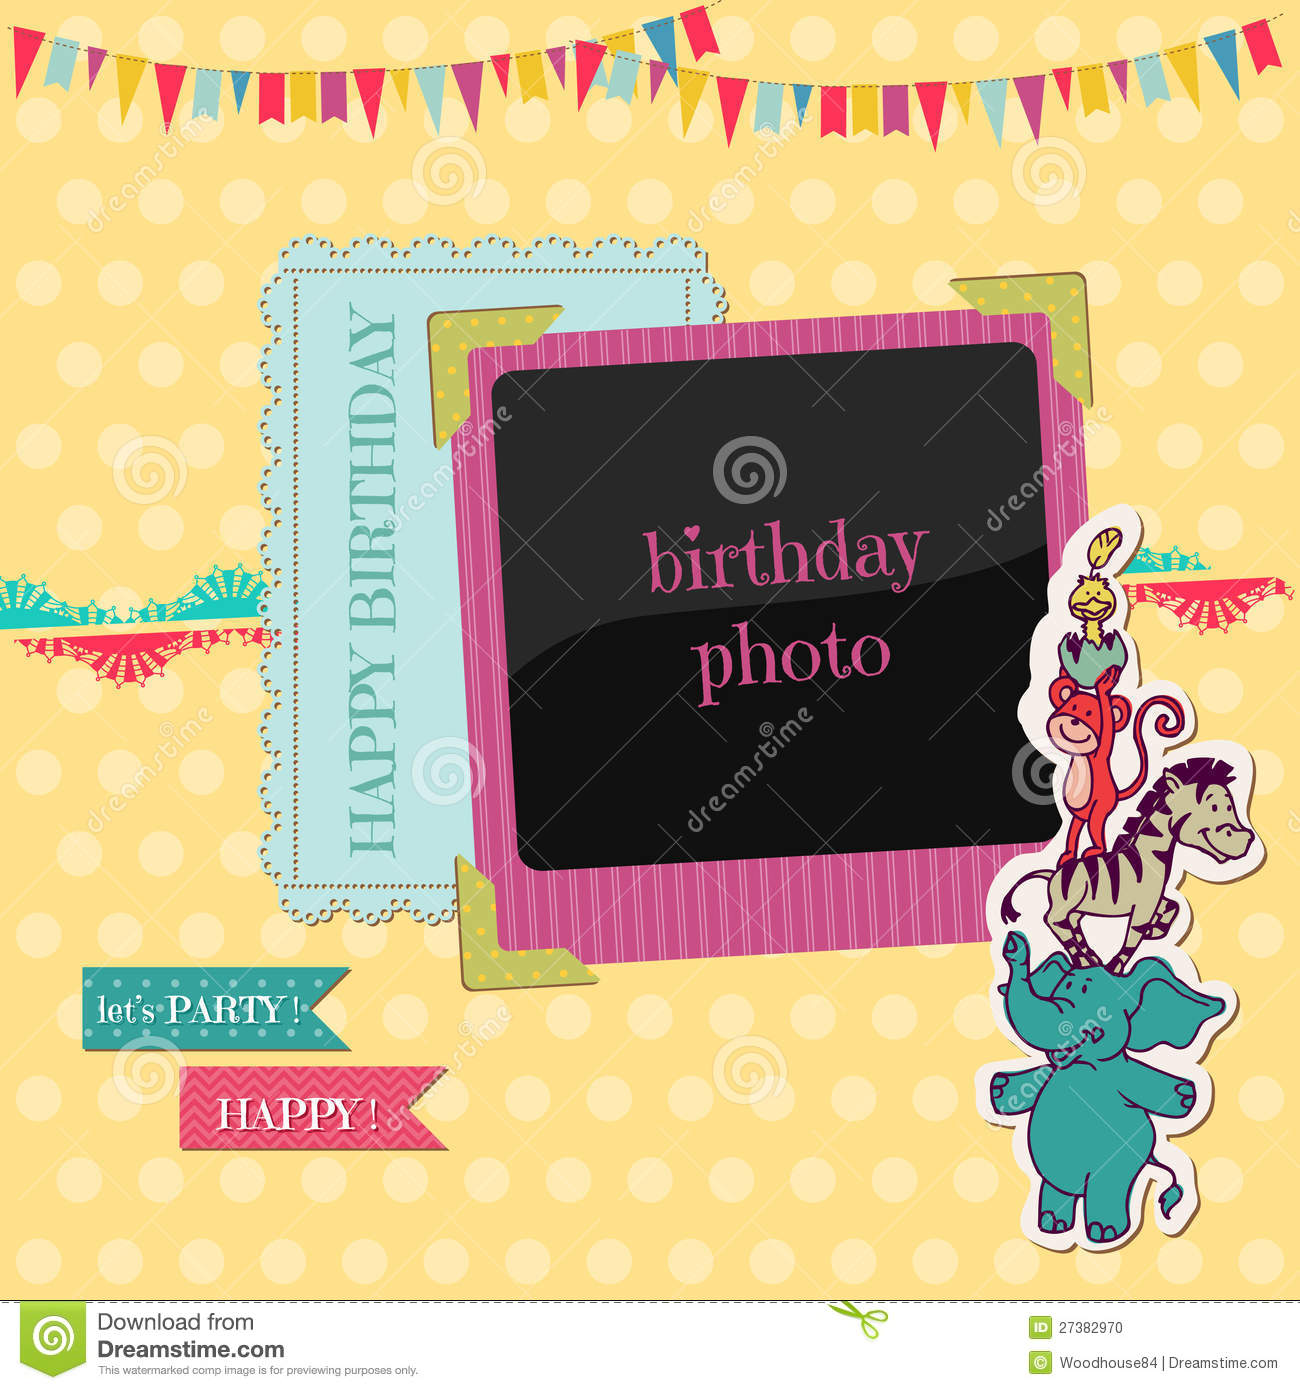 Birthday Card With Photo Frame Stock Vector - Illustration ...